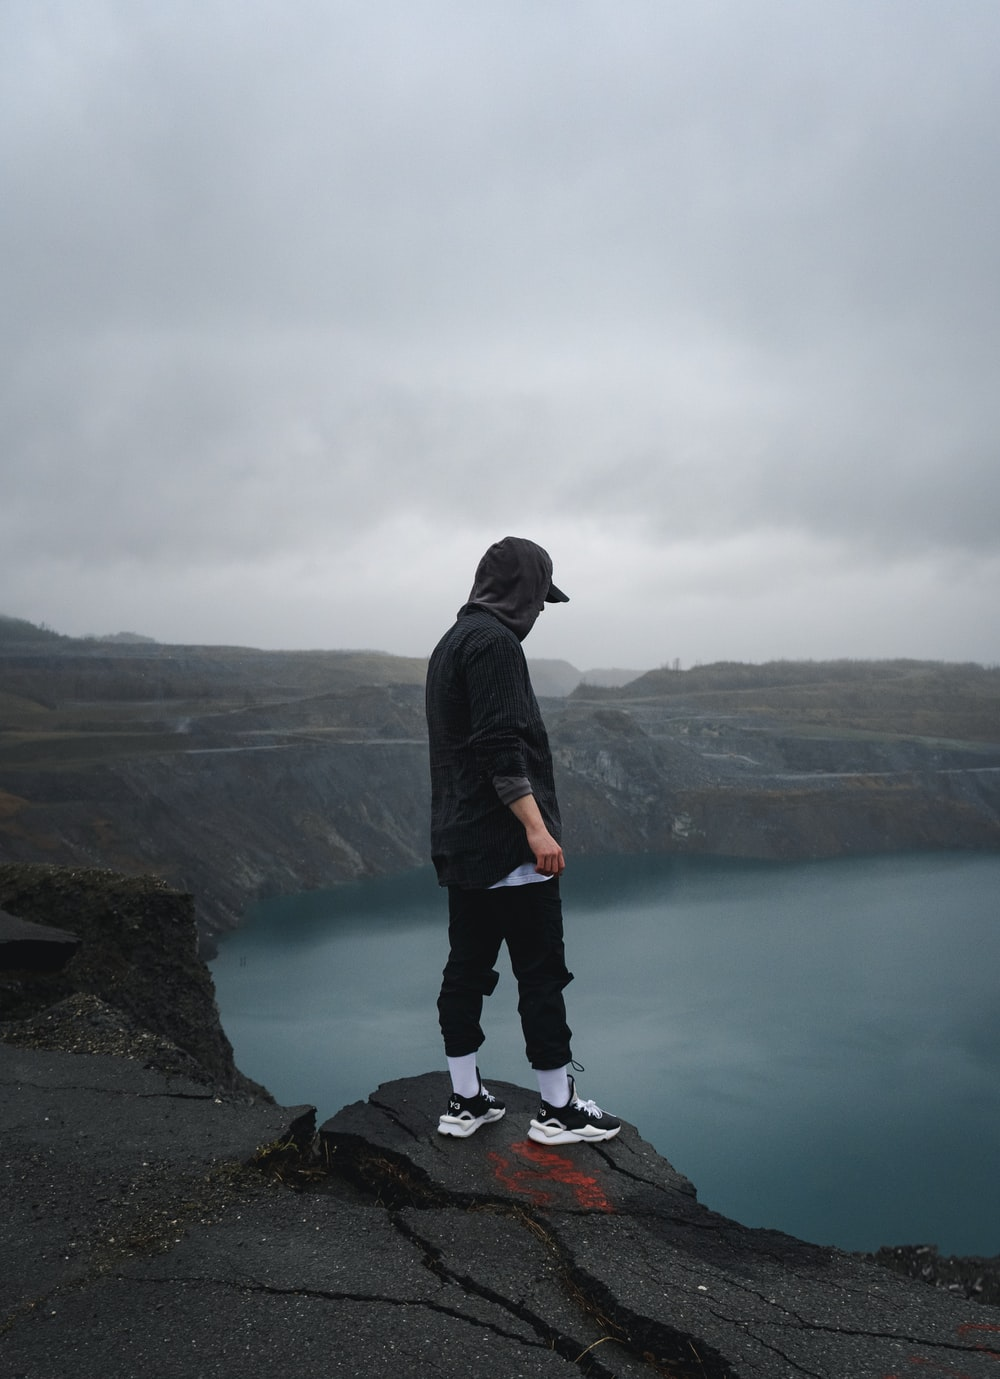 man in black hoodie and black pants standing on rock near body of water during daytime